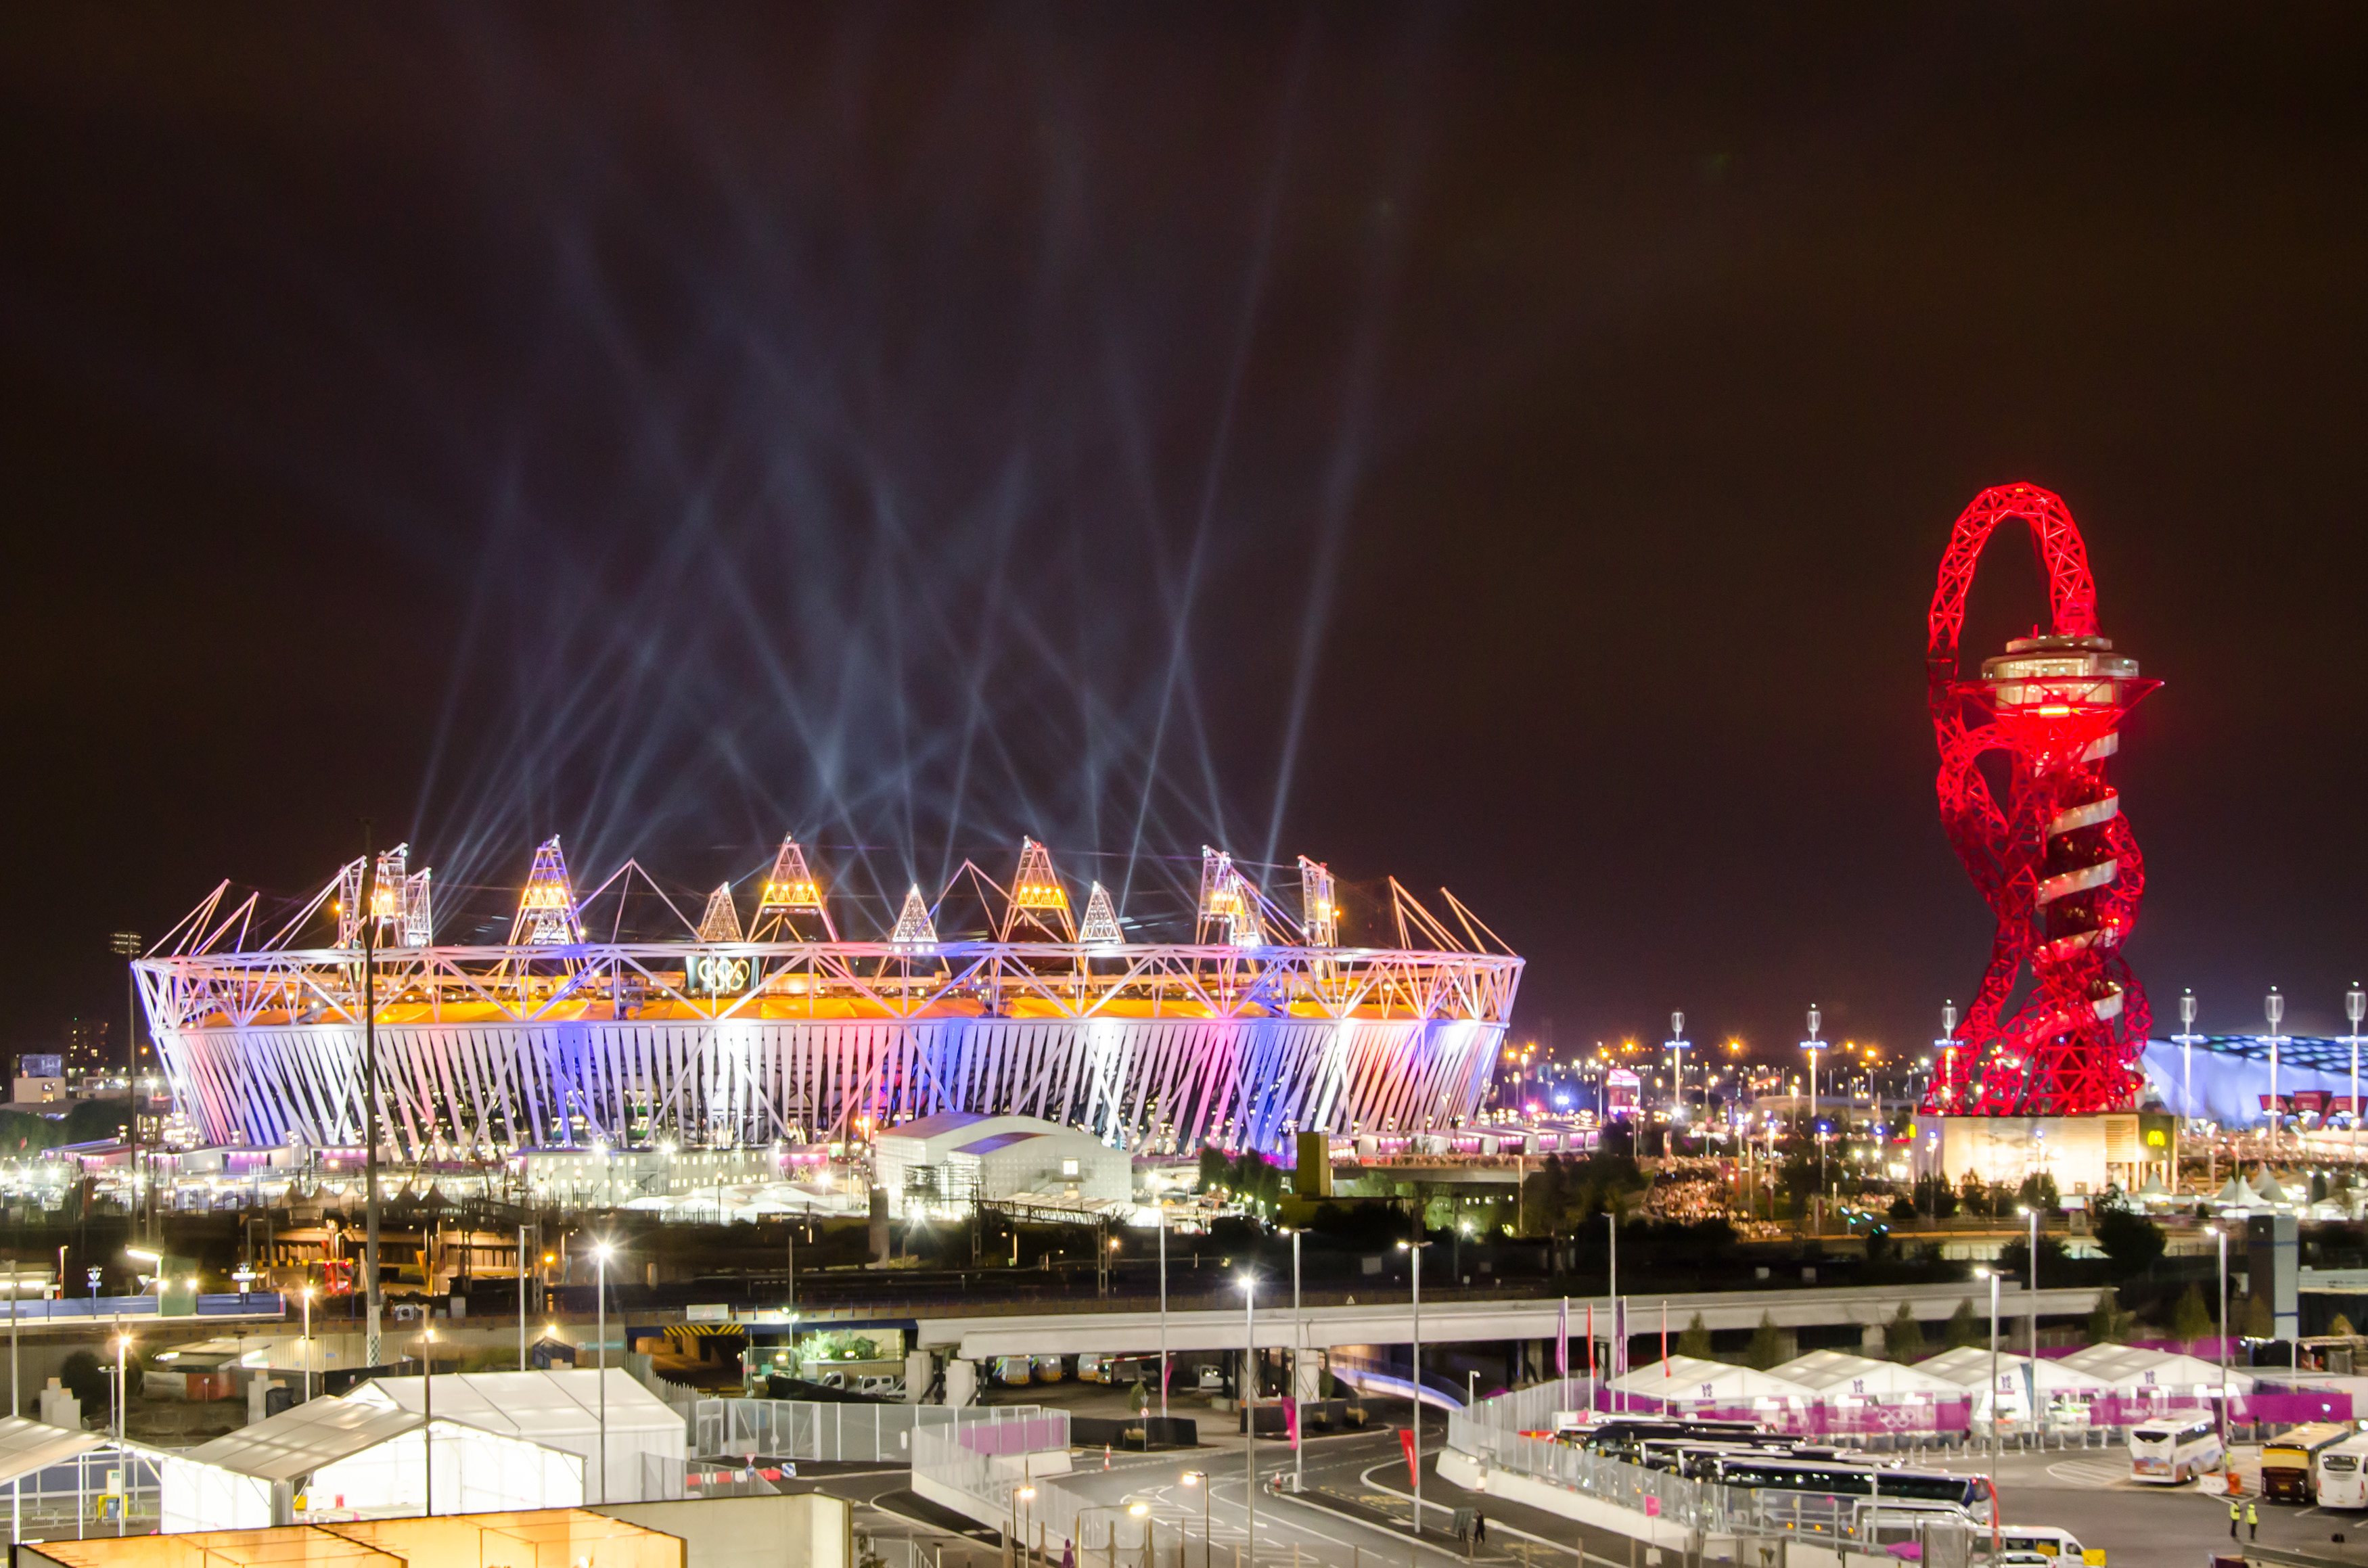 Olympic_stadium_and_The_Orbit_during_London_Olympics_opening_ceremony_(2012-07-27)_2.jpg